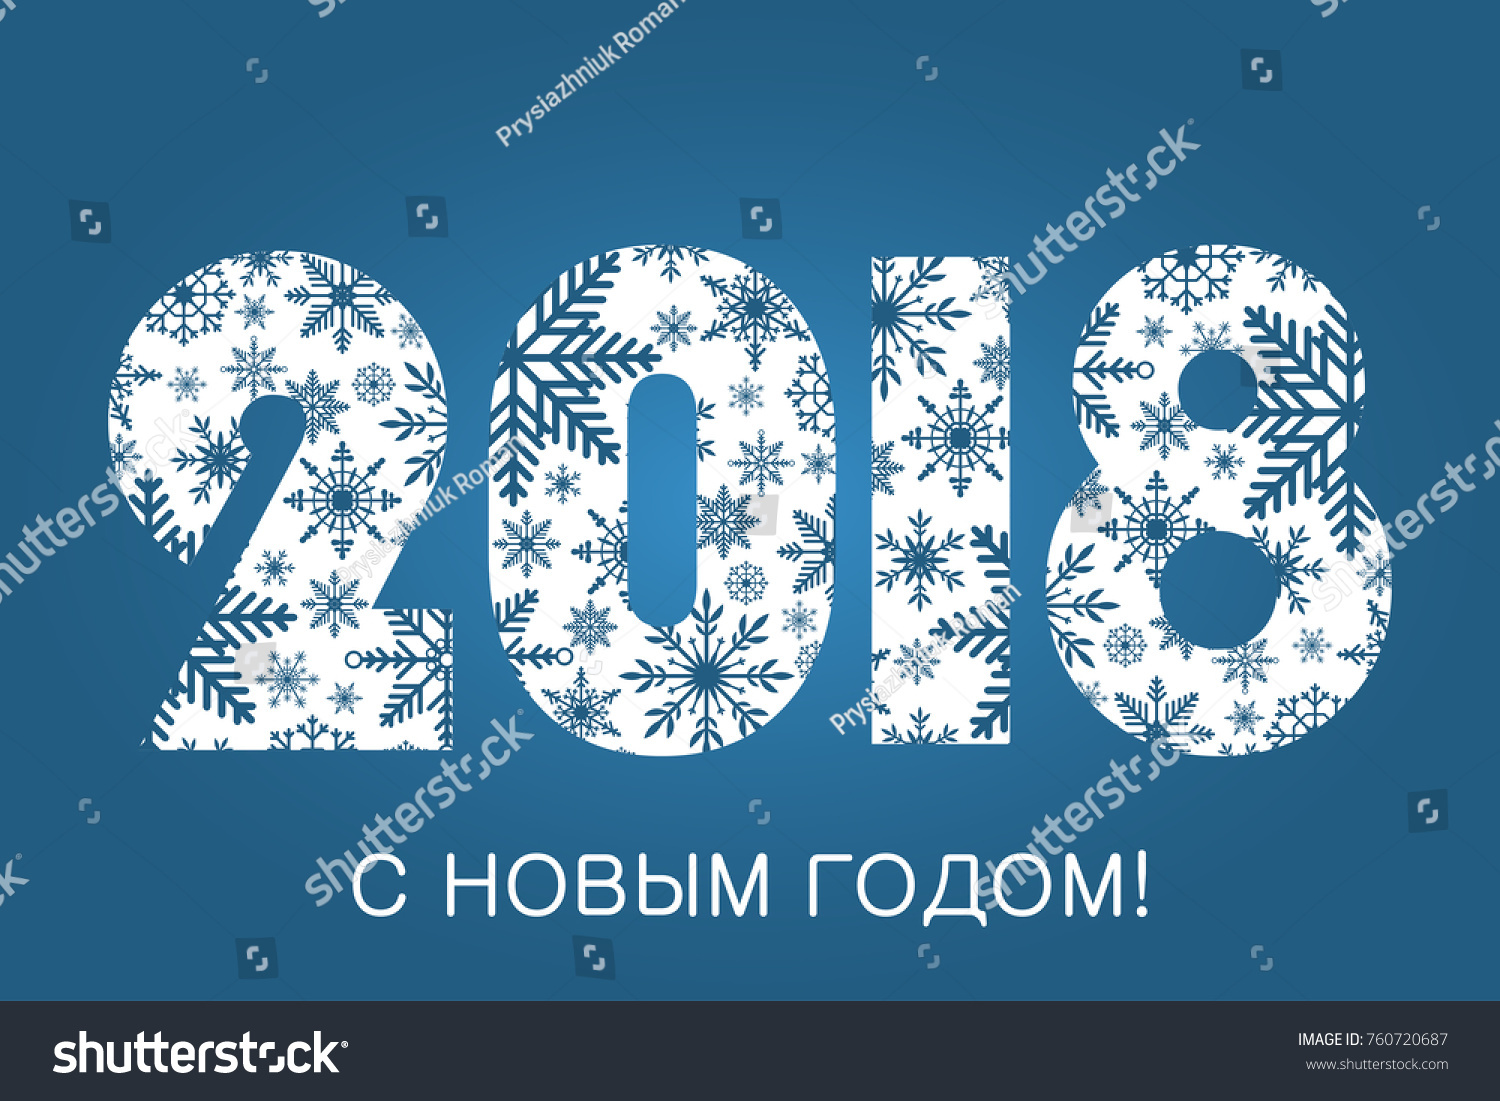 2018 happy new year card russian stock vector 760720687 shutterstock 2018 happy new year card in russian made from snowflakes holiday poster banner m4hsunfo Image collections